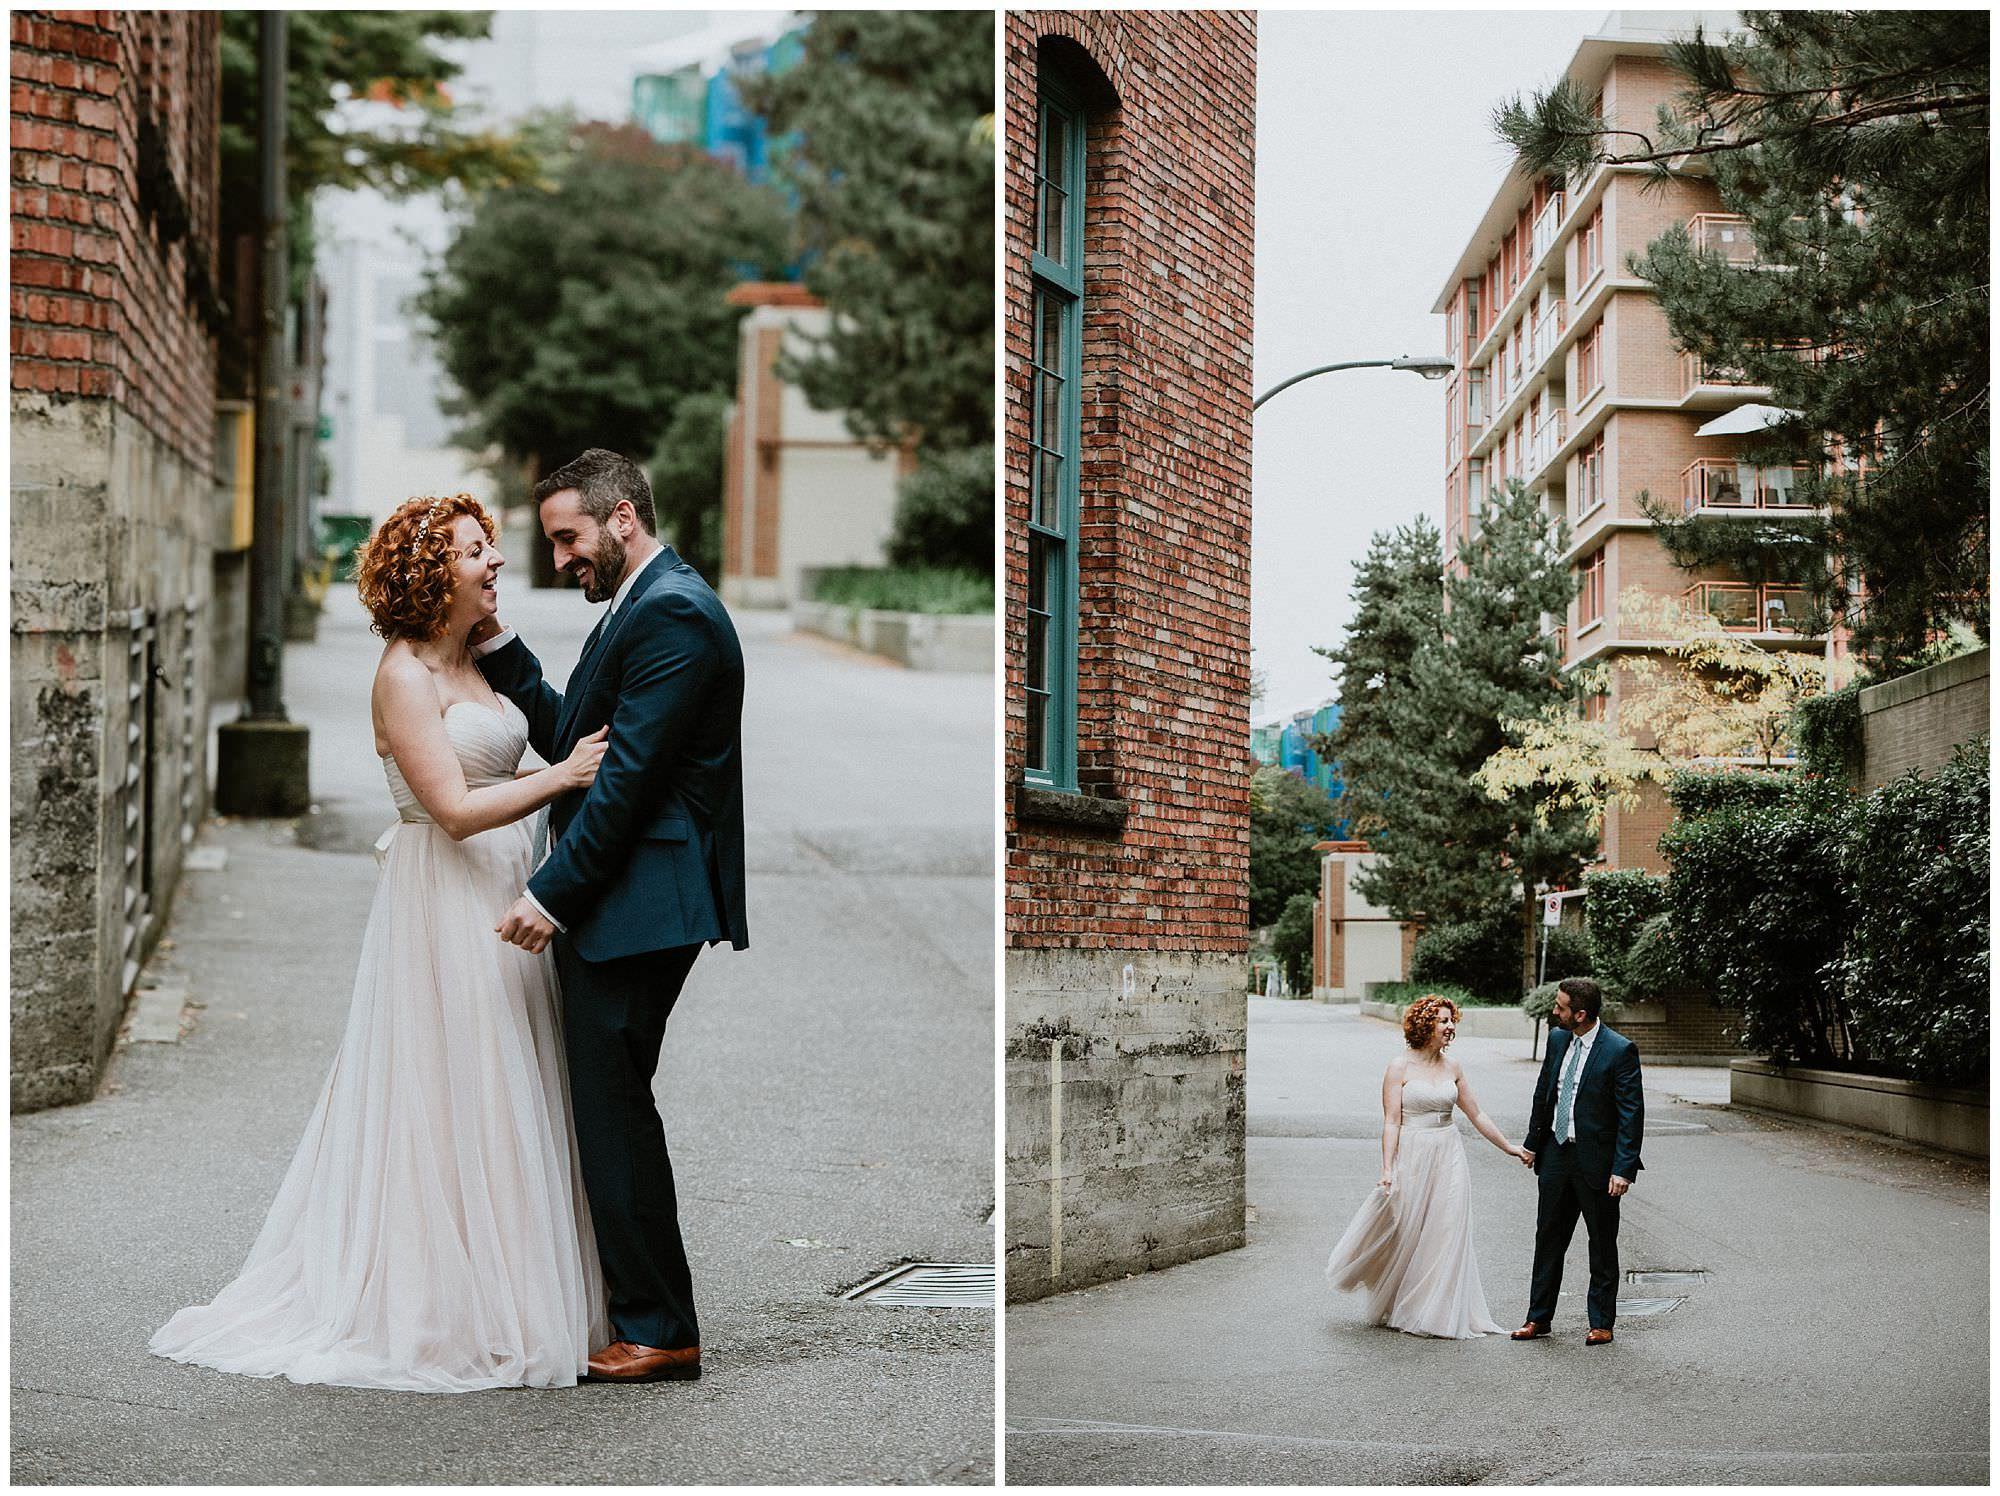 Bride and groom in Yaletown after their wedding ceremony at The Loft at Earls in Vancouver, candid wedding photography